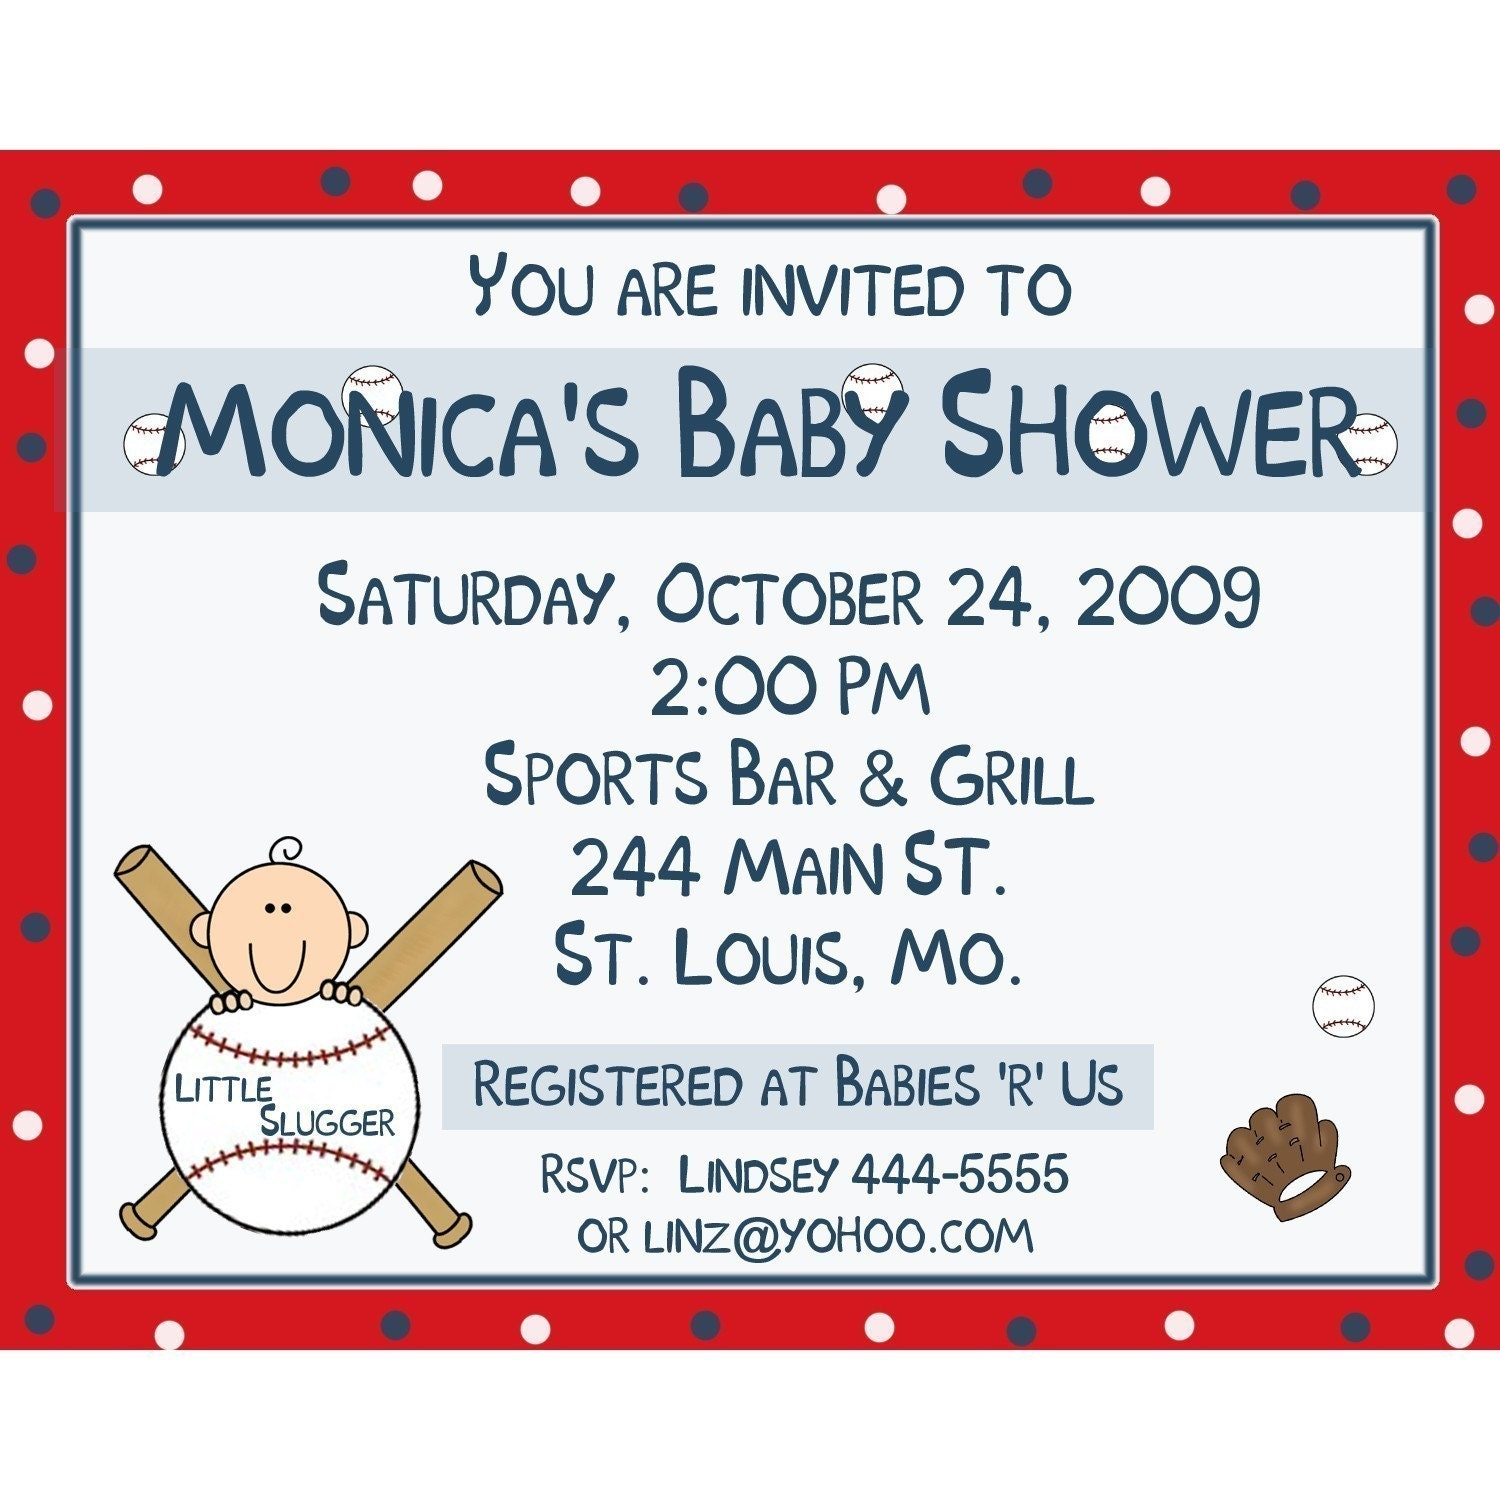 20 personalized baby shower invitations baseball little